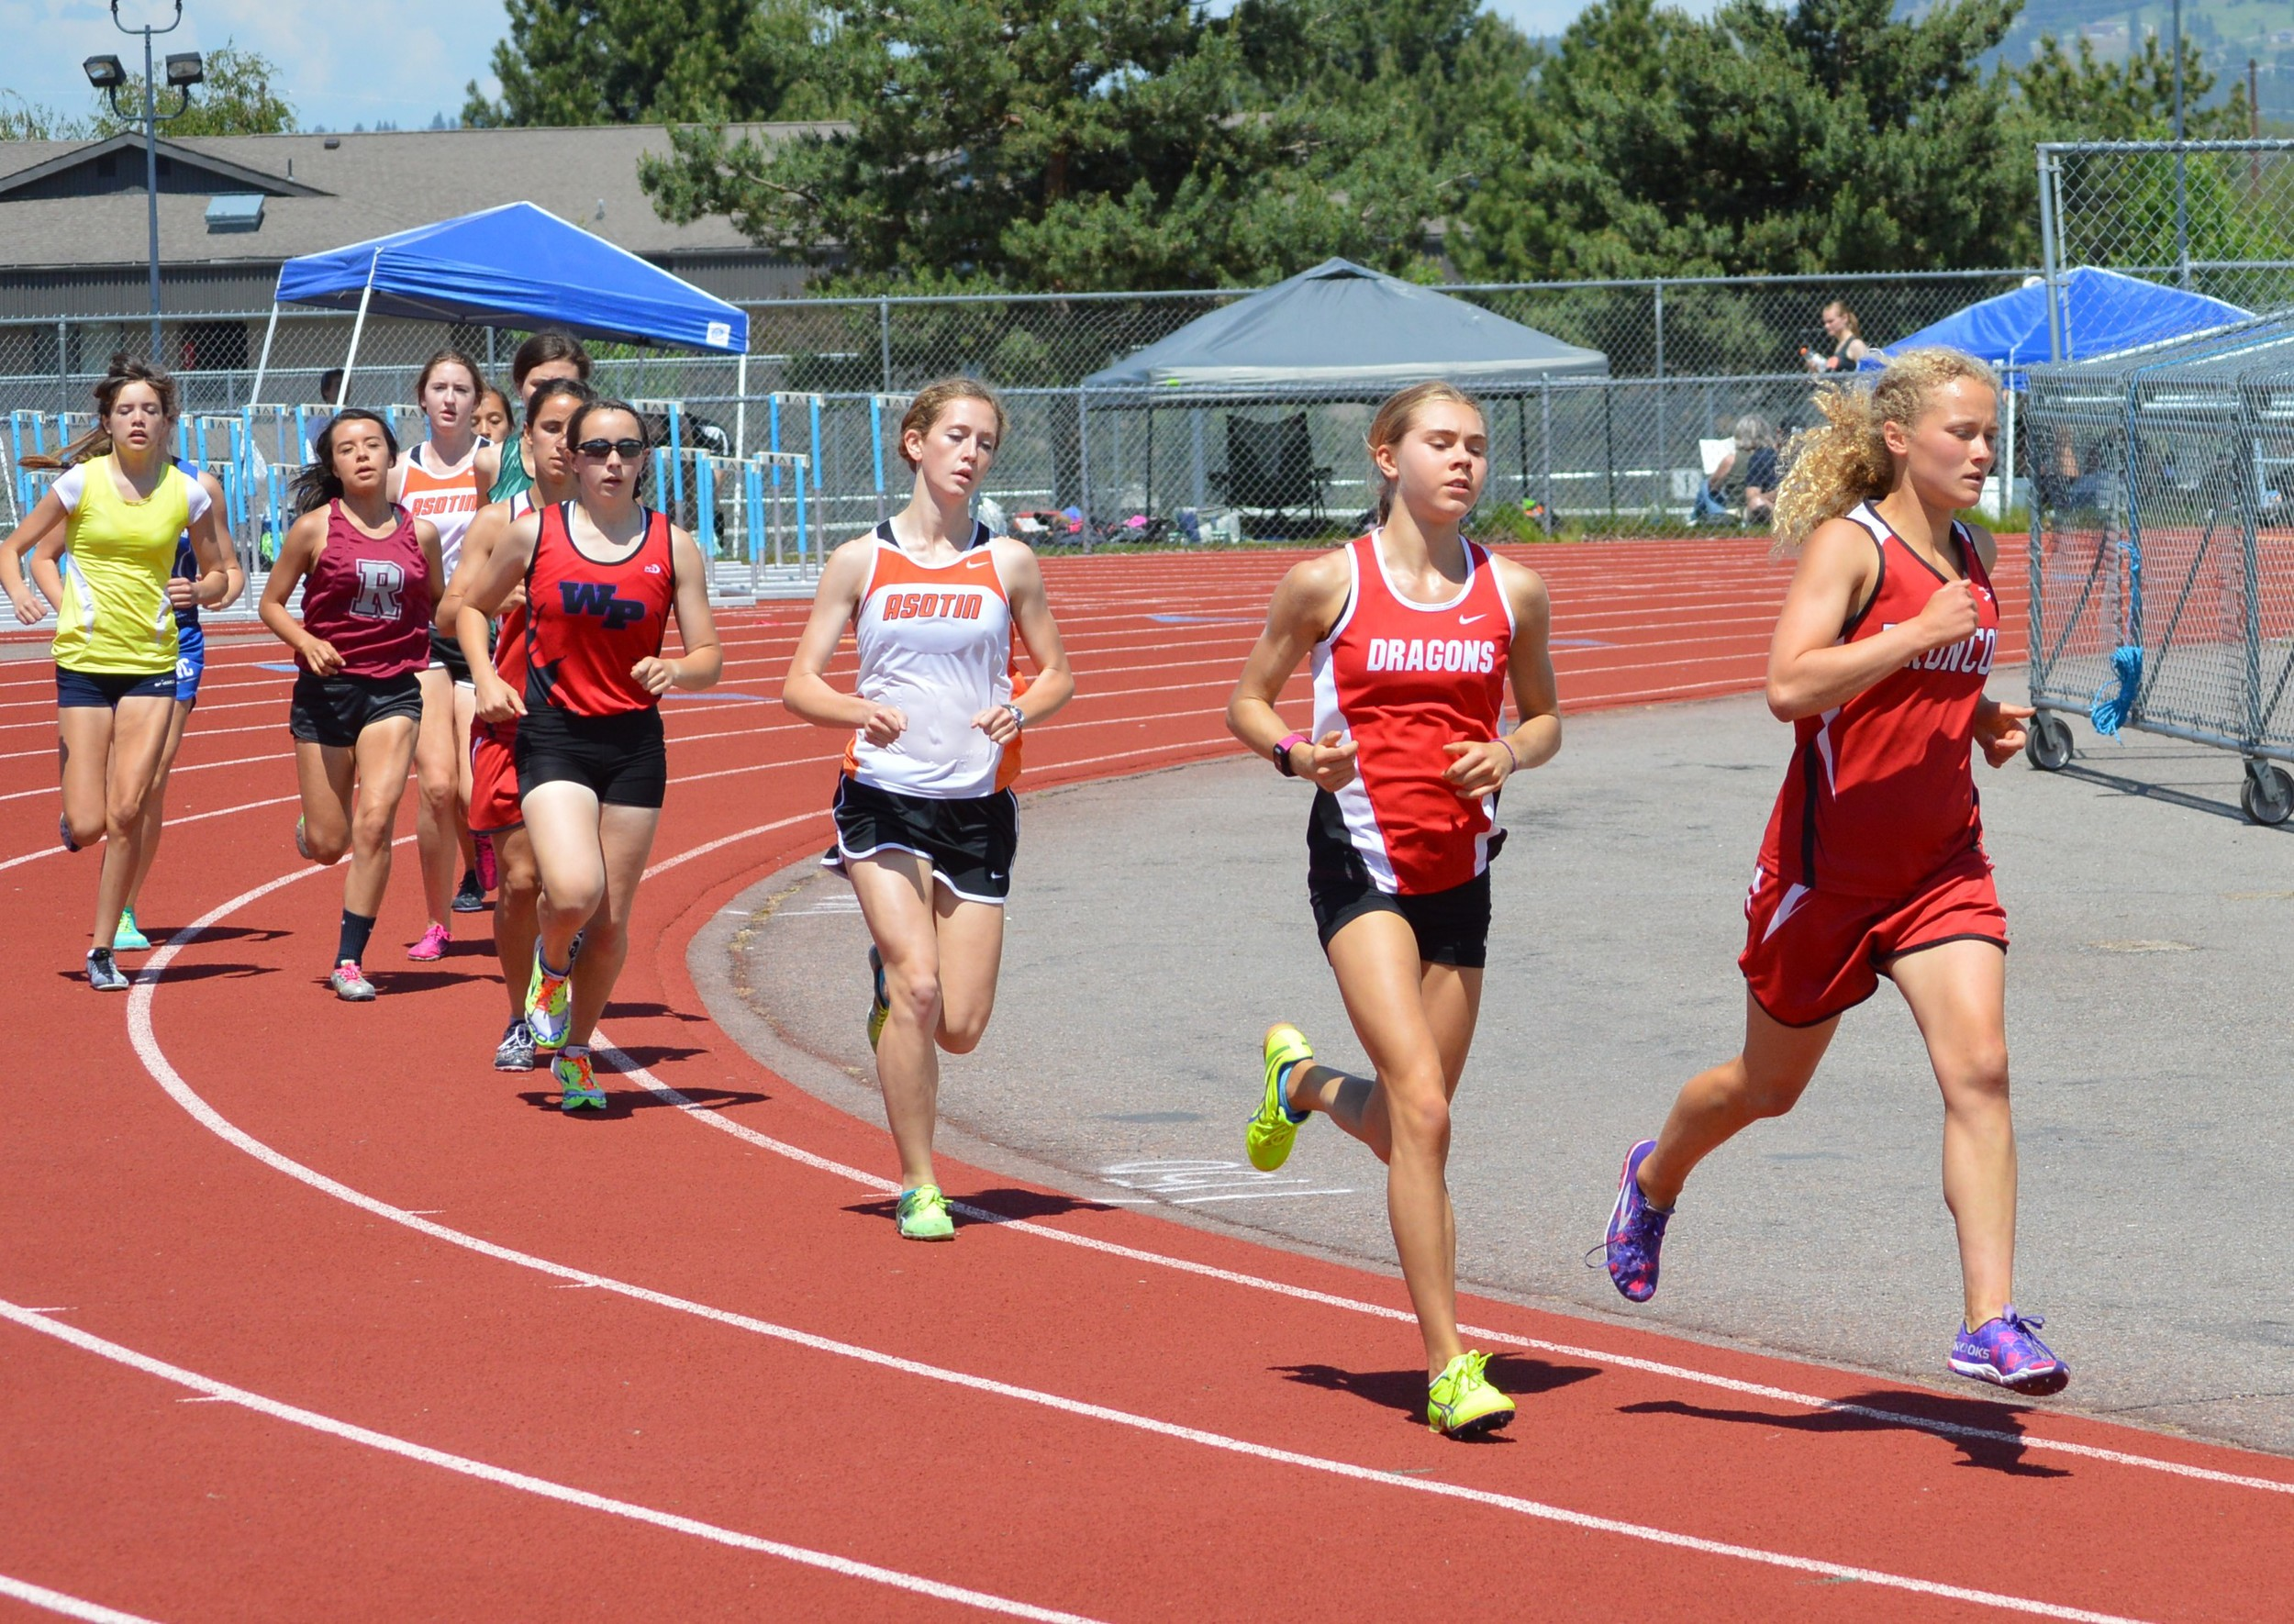 Tracy Melville of Lind-Ritzville leads the 3200M with Marika Morelan (St. George) challenging her. Lucy Eggleston holds a steady third with Waitsbury-Prescott's Emily Adams grabbing fourth.